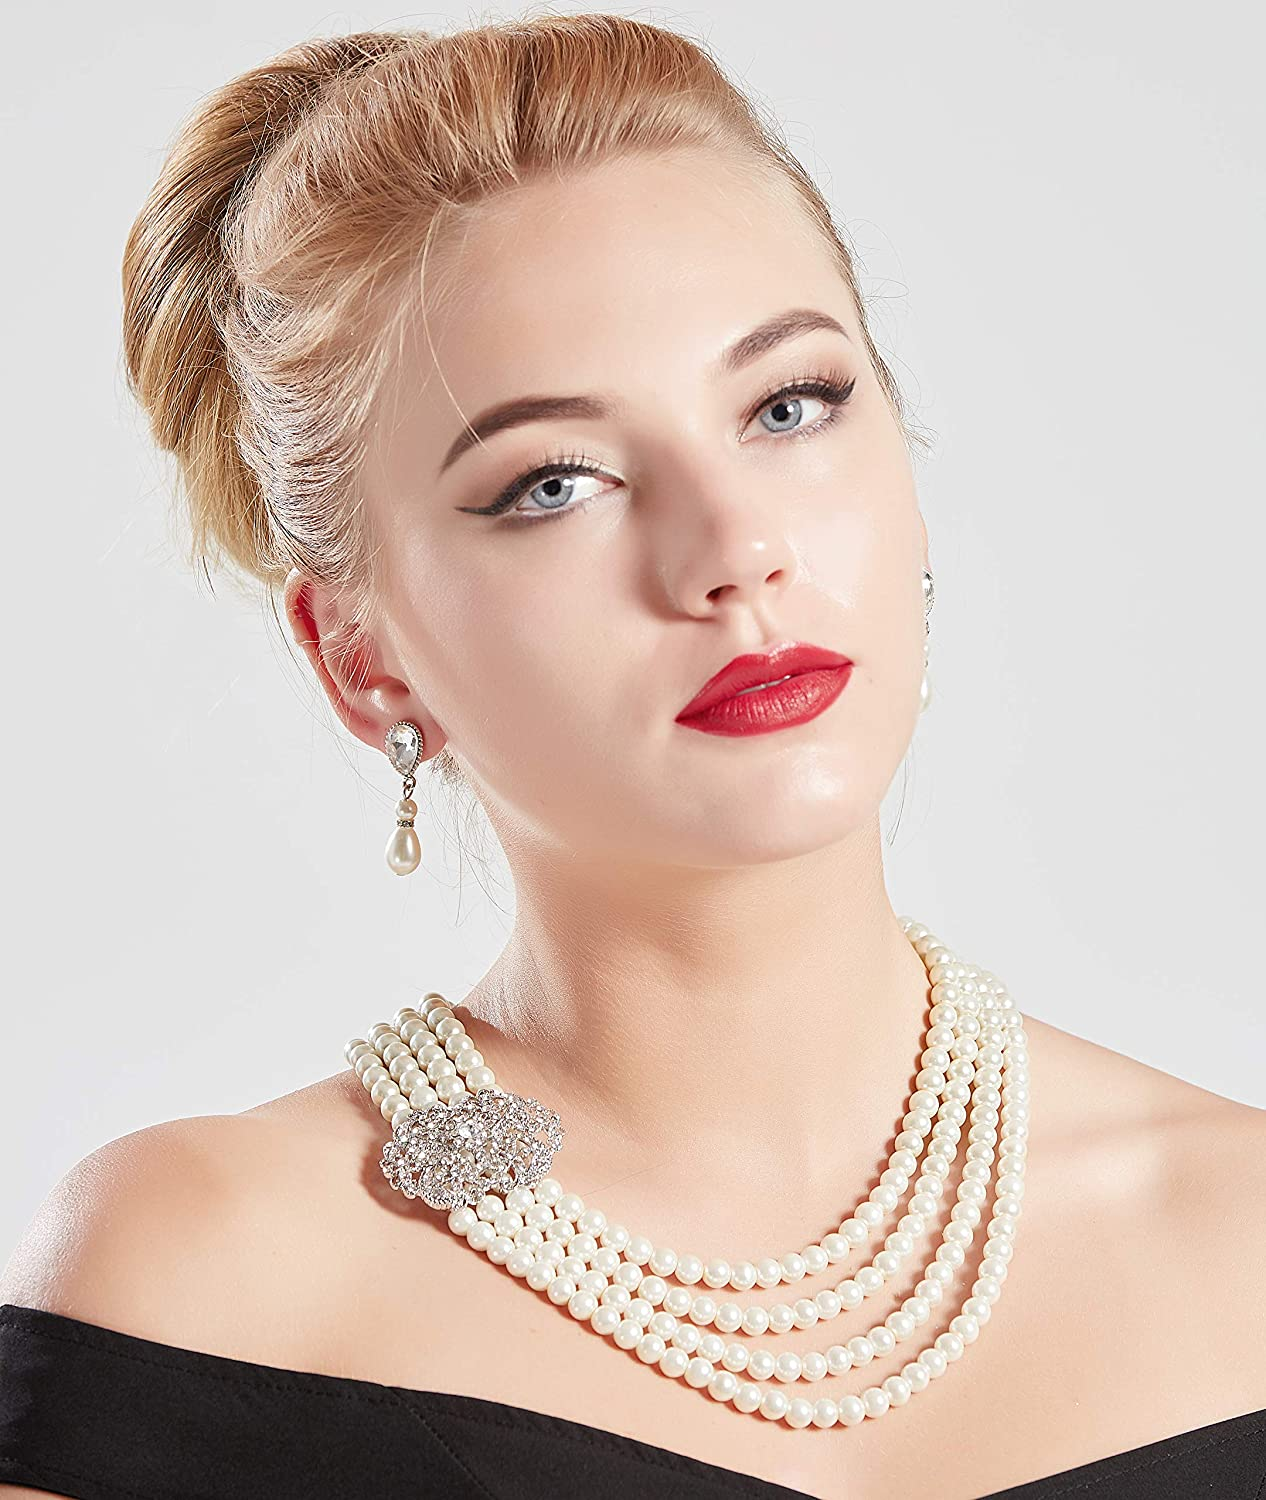 1950s Jewelry Styles and History BABEYOND 1920s Gatsby Pearl Necklace Vintage Bridal Pearl Necklace Earrings Jewelry Set Multilayer Imitation Pearl Necklace with Brooch $19.99 AT vintagedancer.com